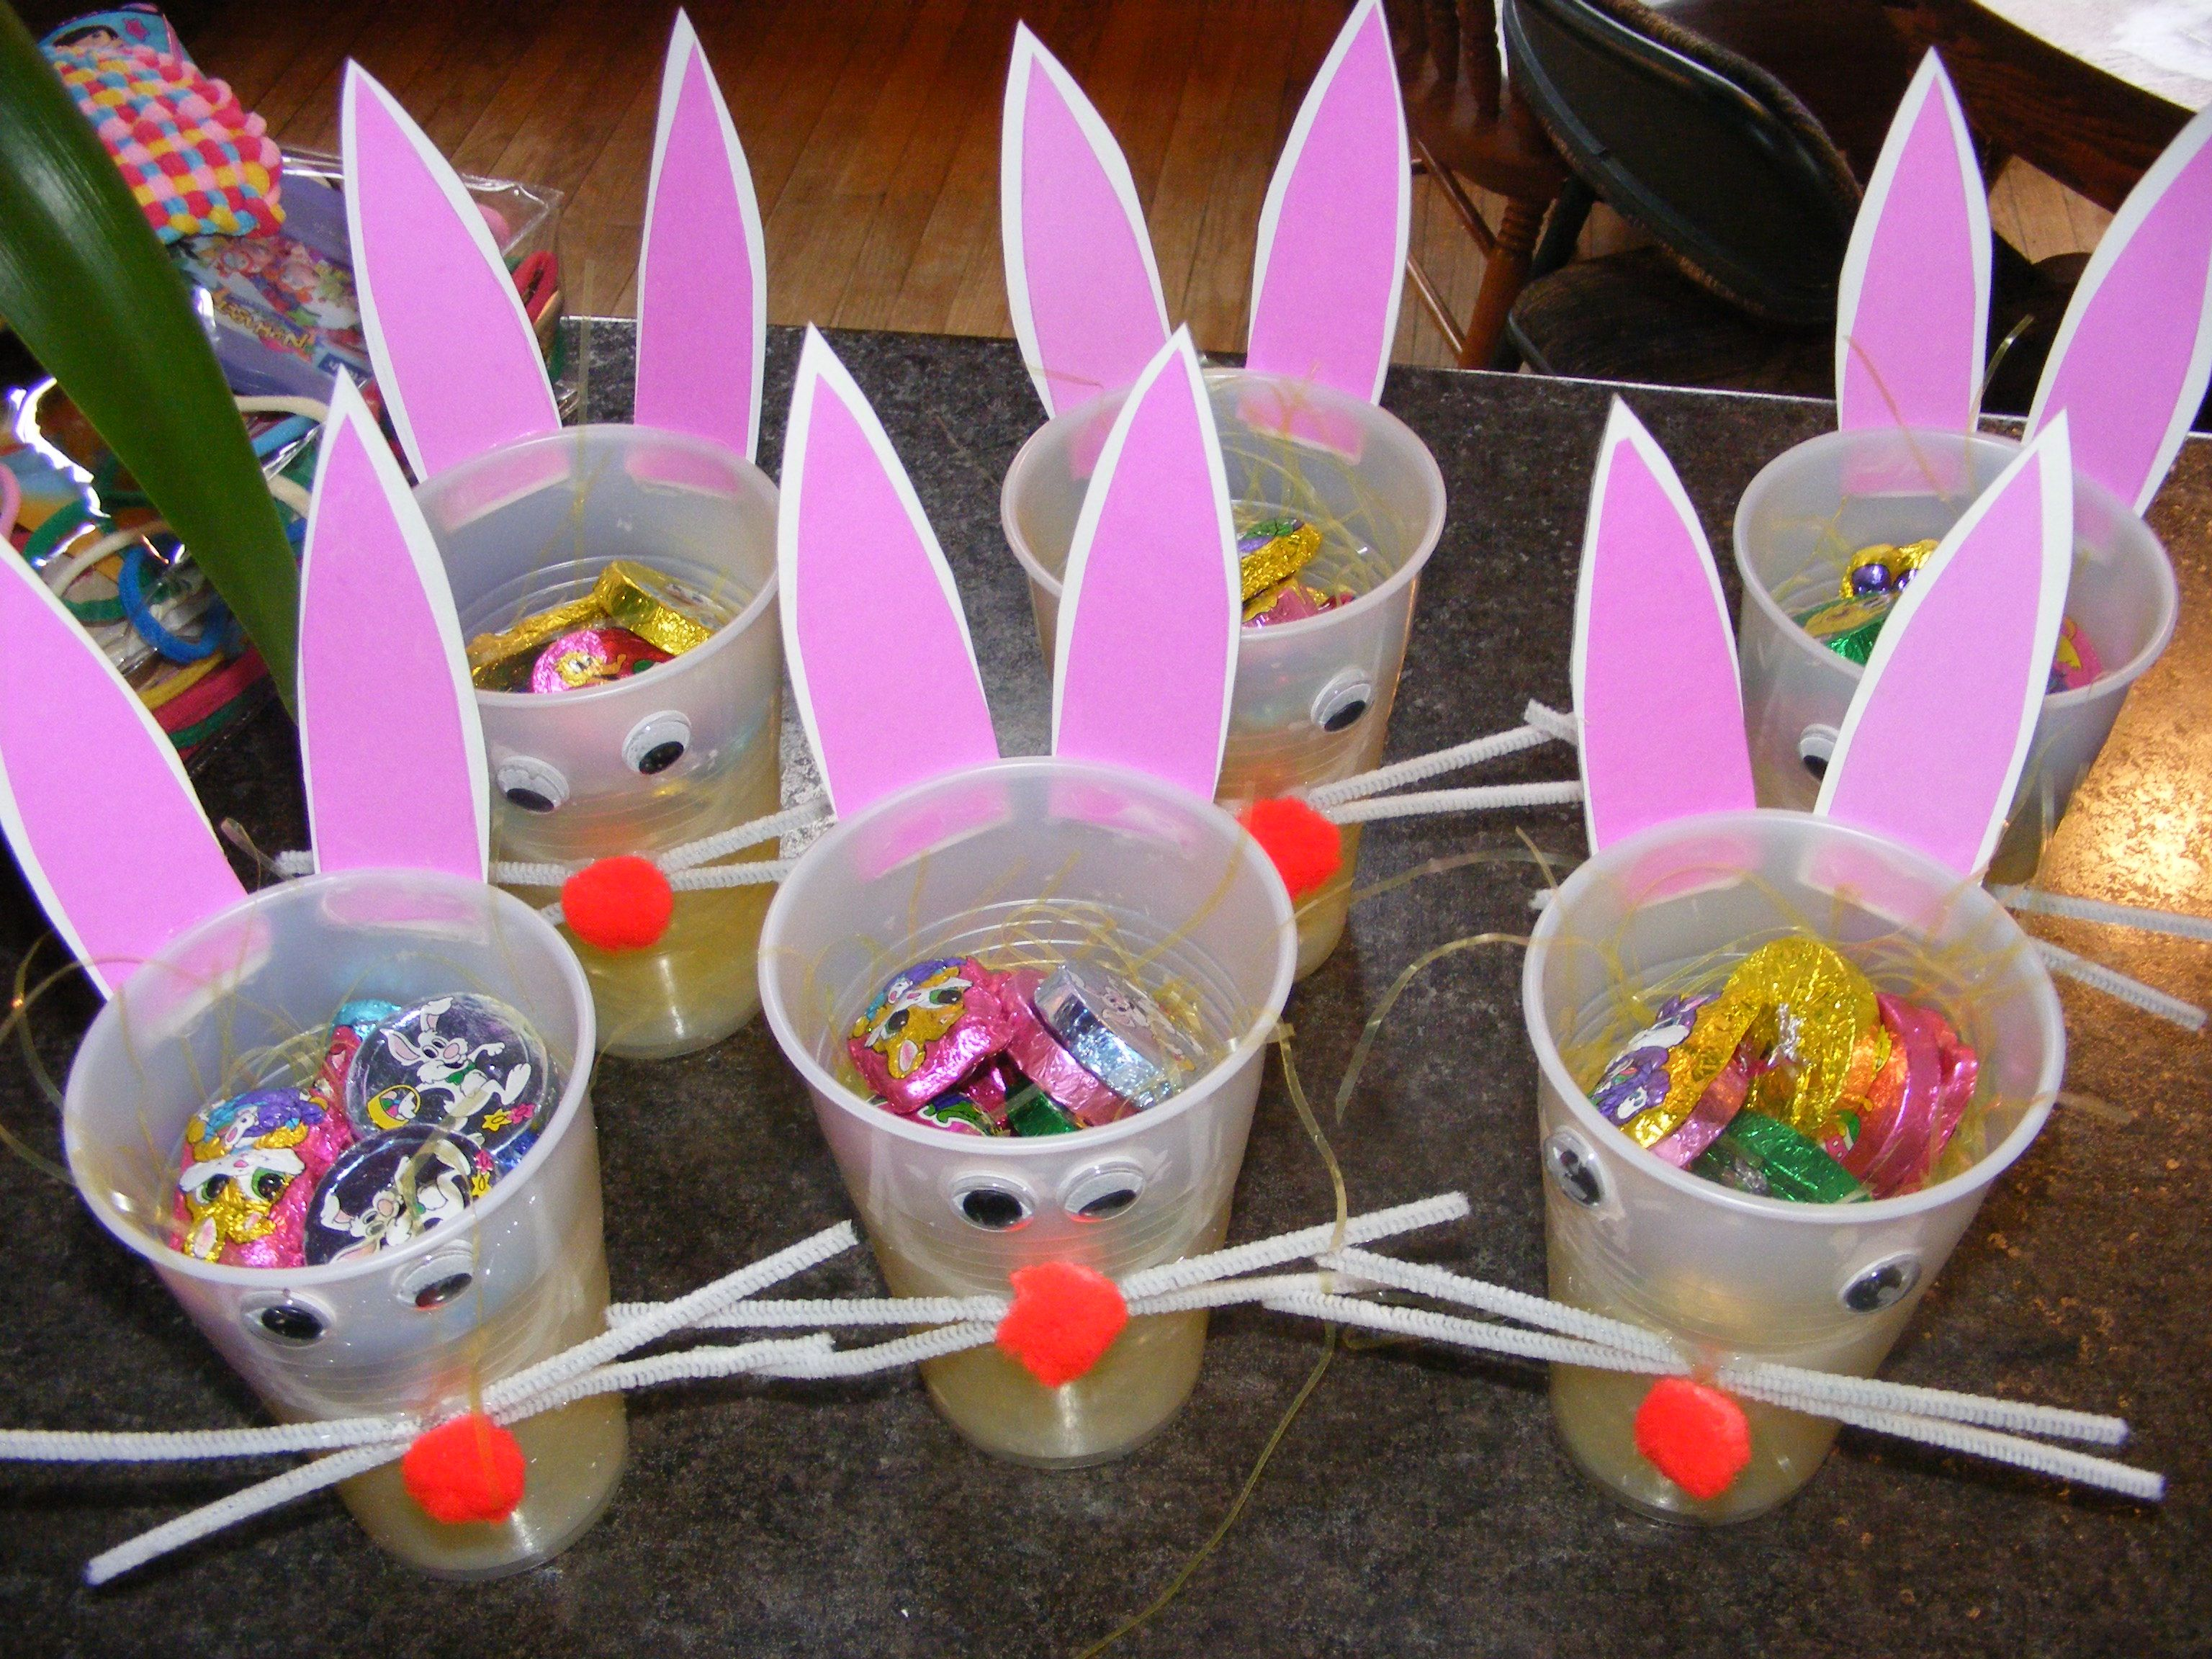 Easter craft add facial features and ears to clear plastic glasses easter craft add facial features and ears to clear plastic glasses from holiday daycare projects by negle Images